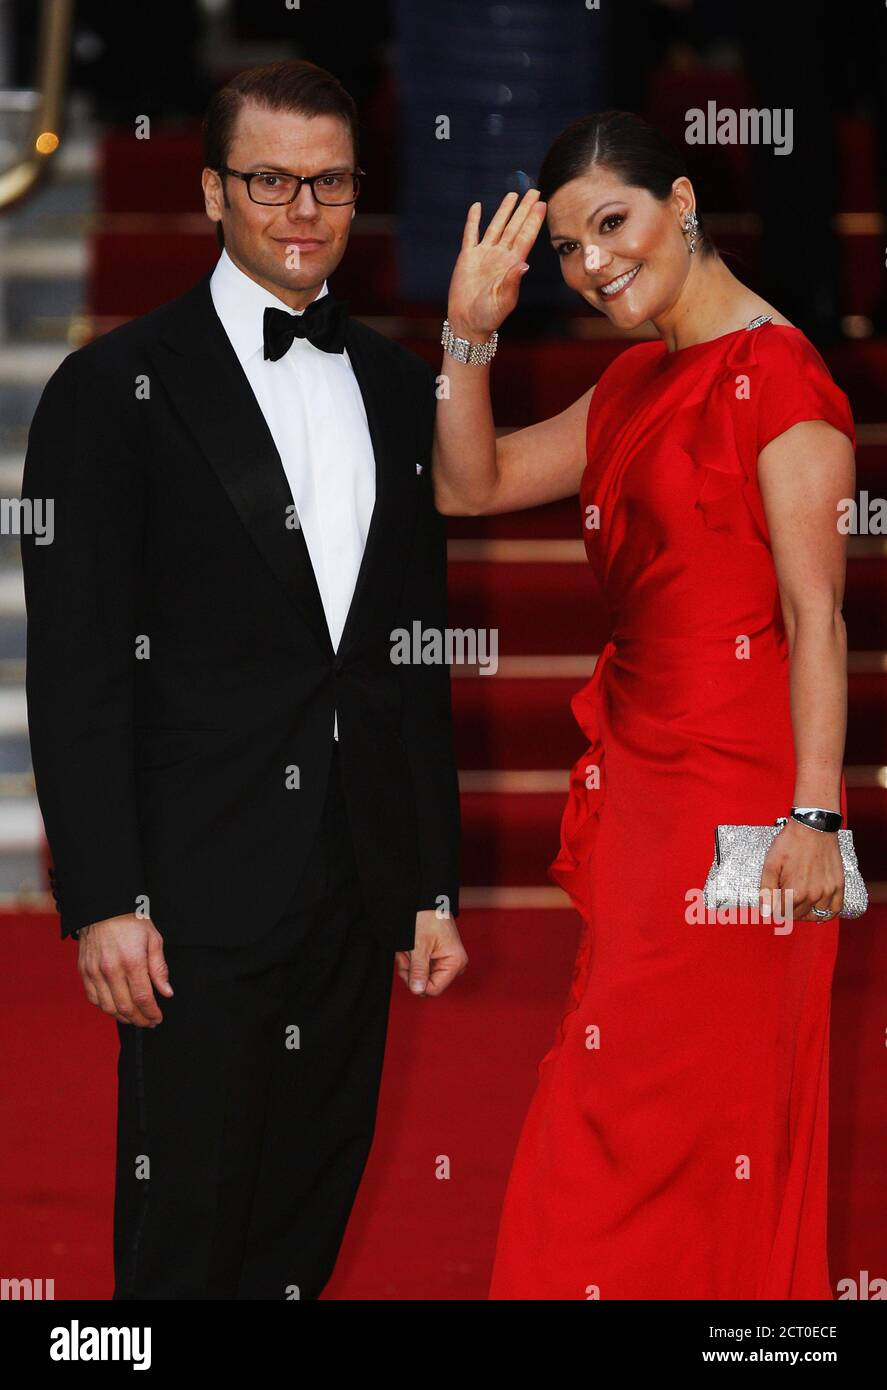 Sweden's Crown Princess Victoria (R) and the Duke of Vastergotland arrive for a pre-wedding dinner ahead of the wedding of Prince William and his fiancee Kate Middleton at the Mandarin Oriental Hotel in London April 28, 2011. REUTERS/Tony Gentile (BRITAIN - Tags: ROYALS) Foto de stock